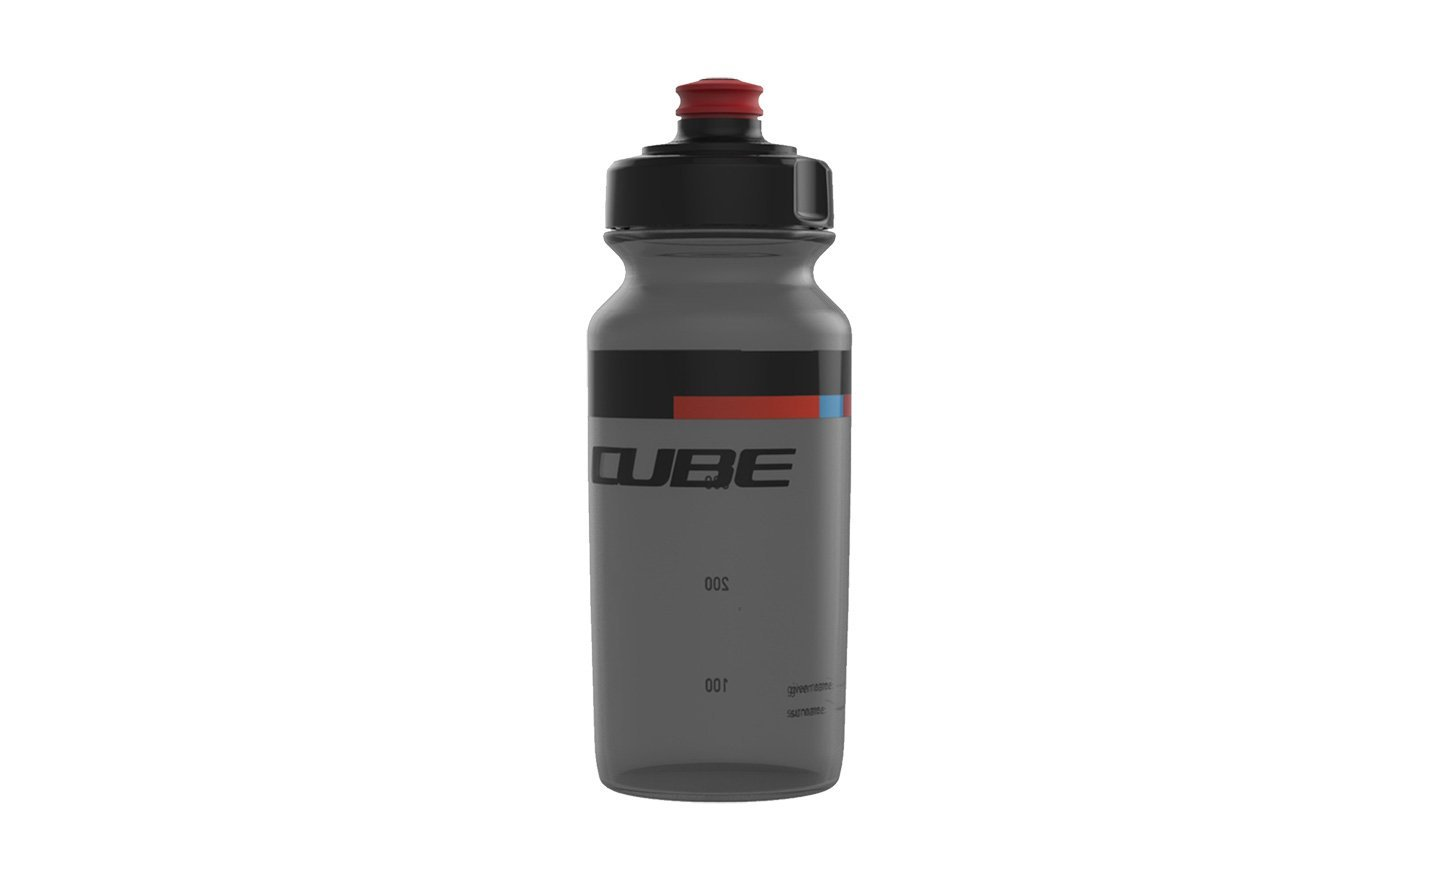 Фляга Cube bottle 0,5 l black teamline